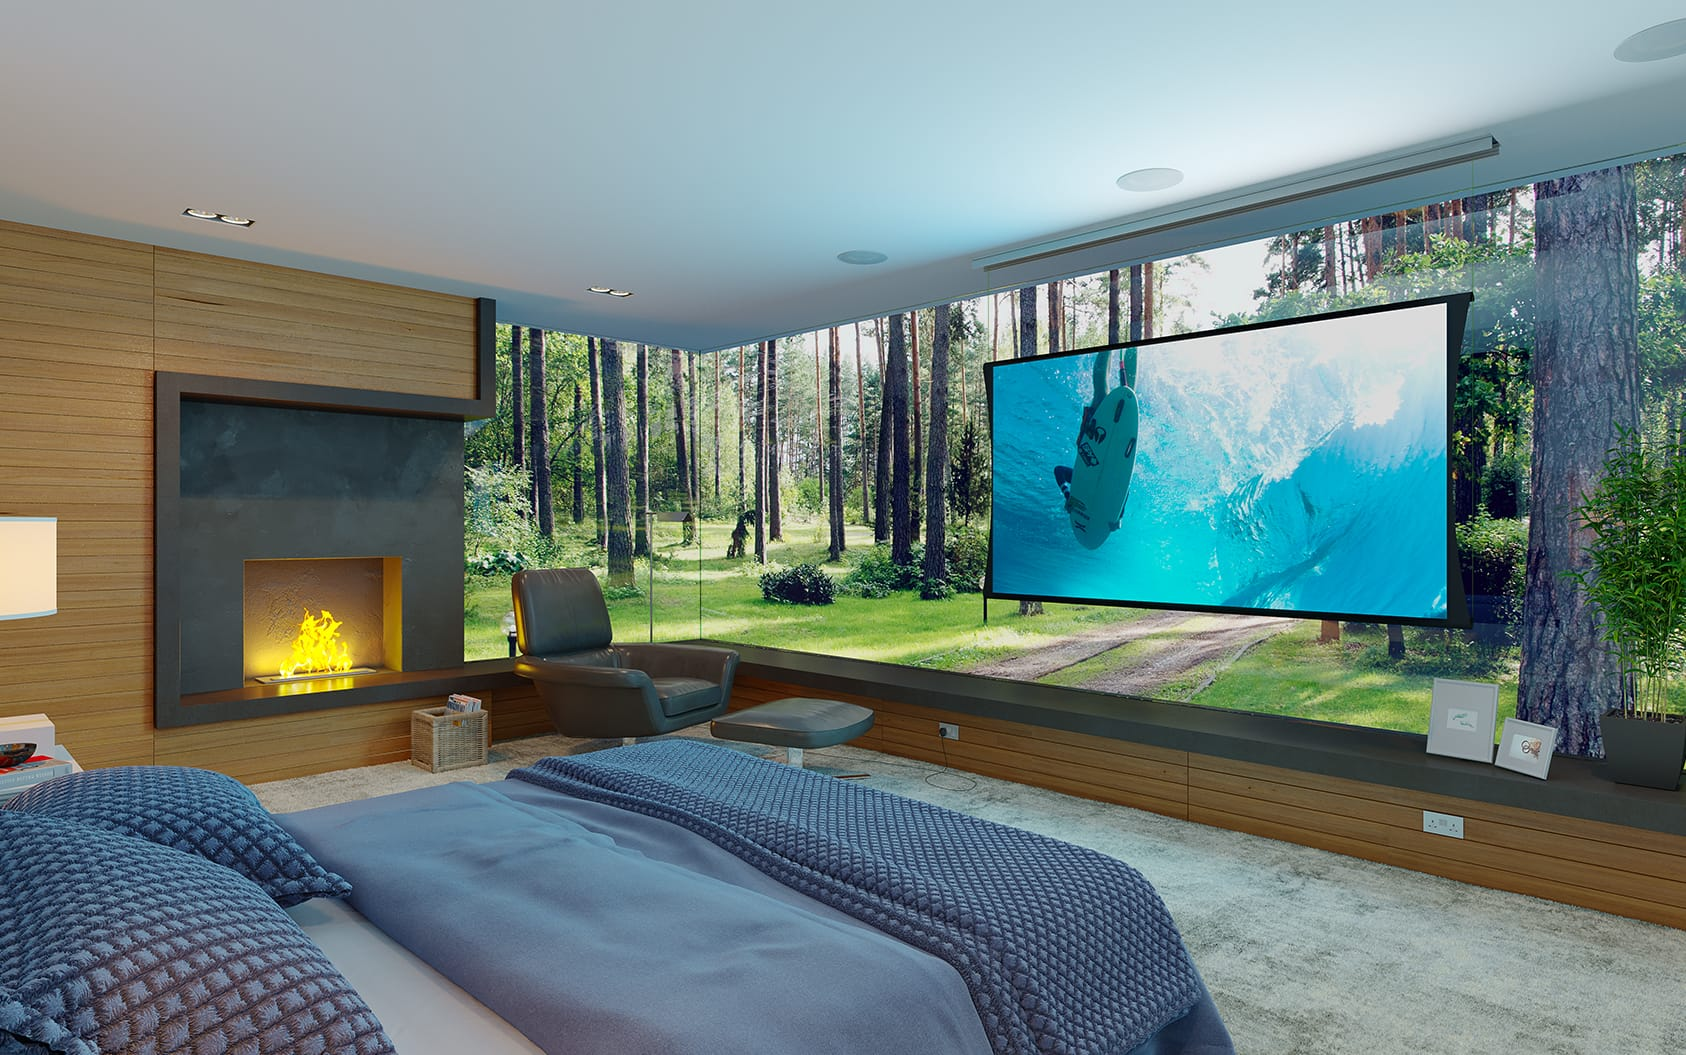 TV Setup in a bed room with projector